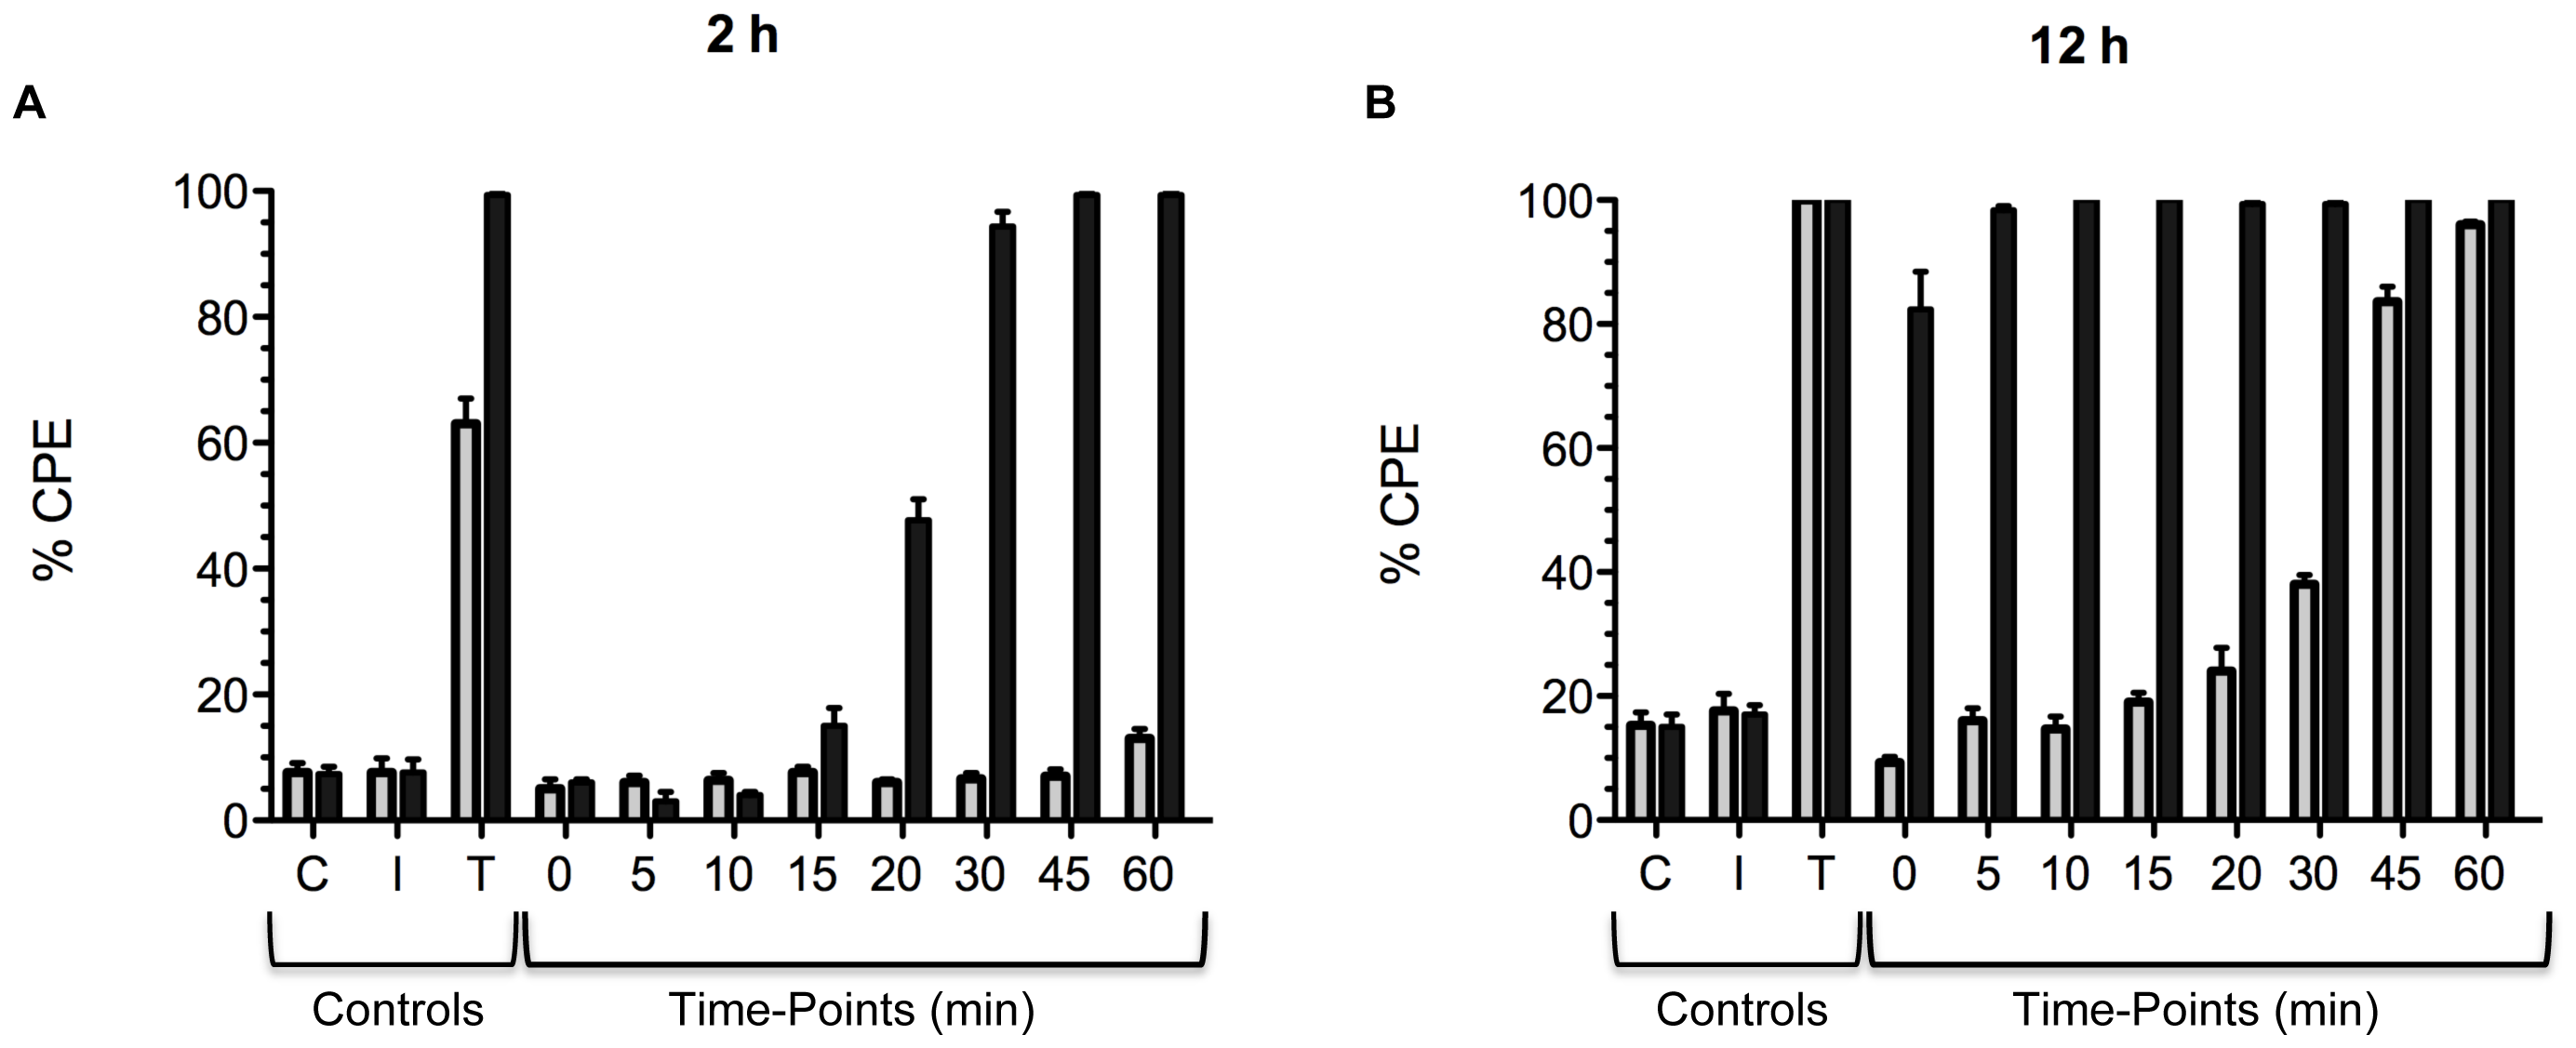 Comparison of the timing of cell entry between TcdB<sub>HV</sub> and TcdB<sub>HIST</sub>.